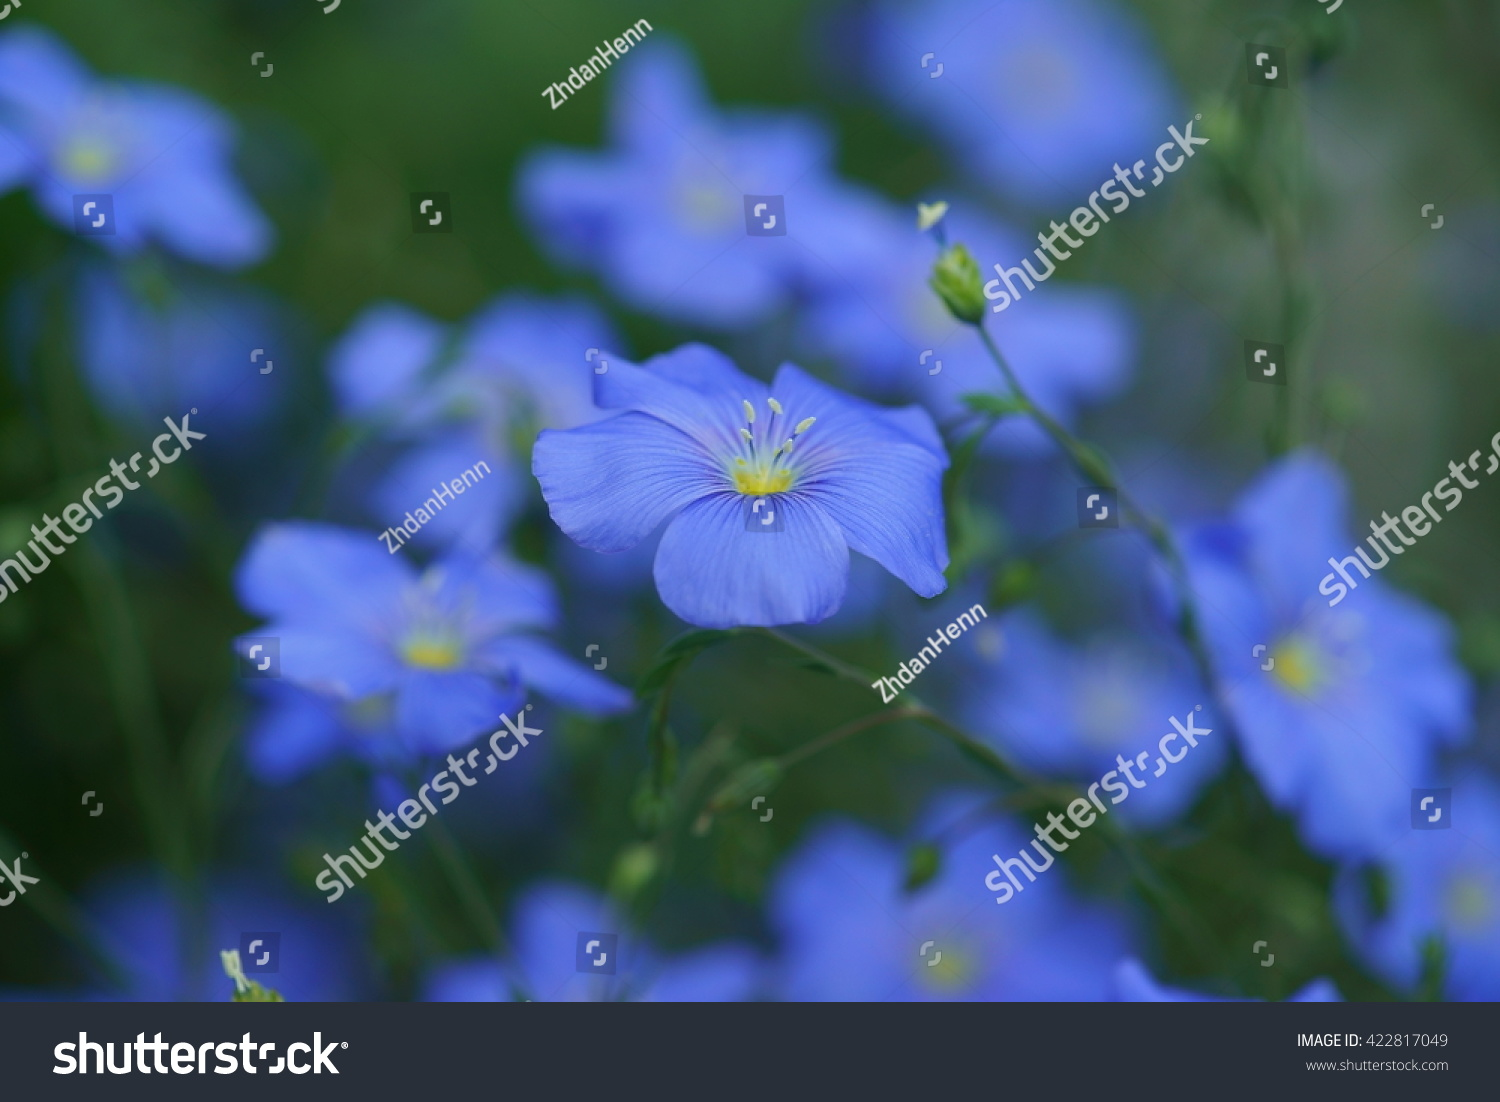 Small blue flowers flax linseed linum stock photo edit now small blue flowers of flax linseed linum usitatissimum close up with green izmirmasajfo